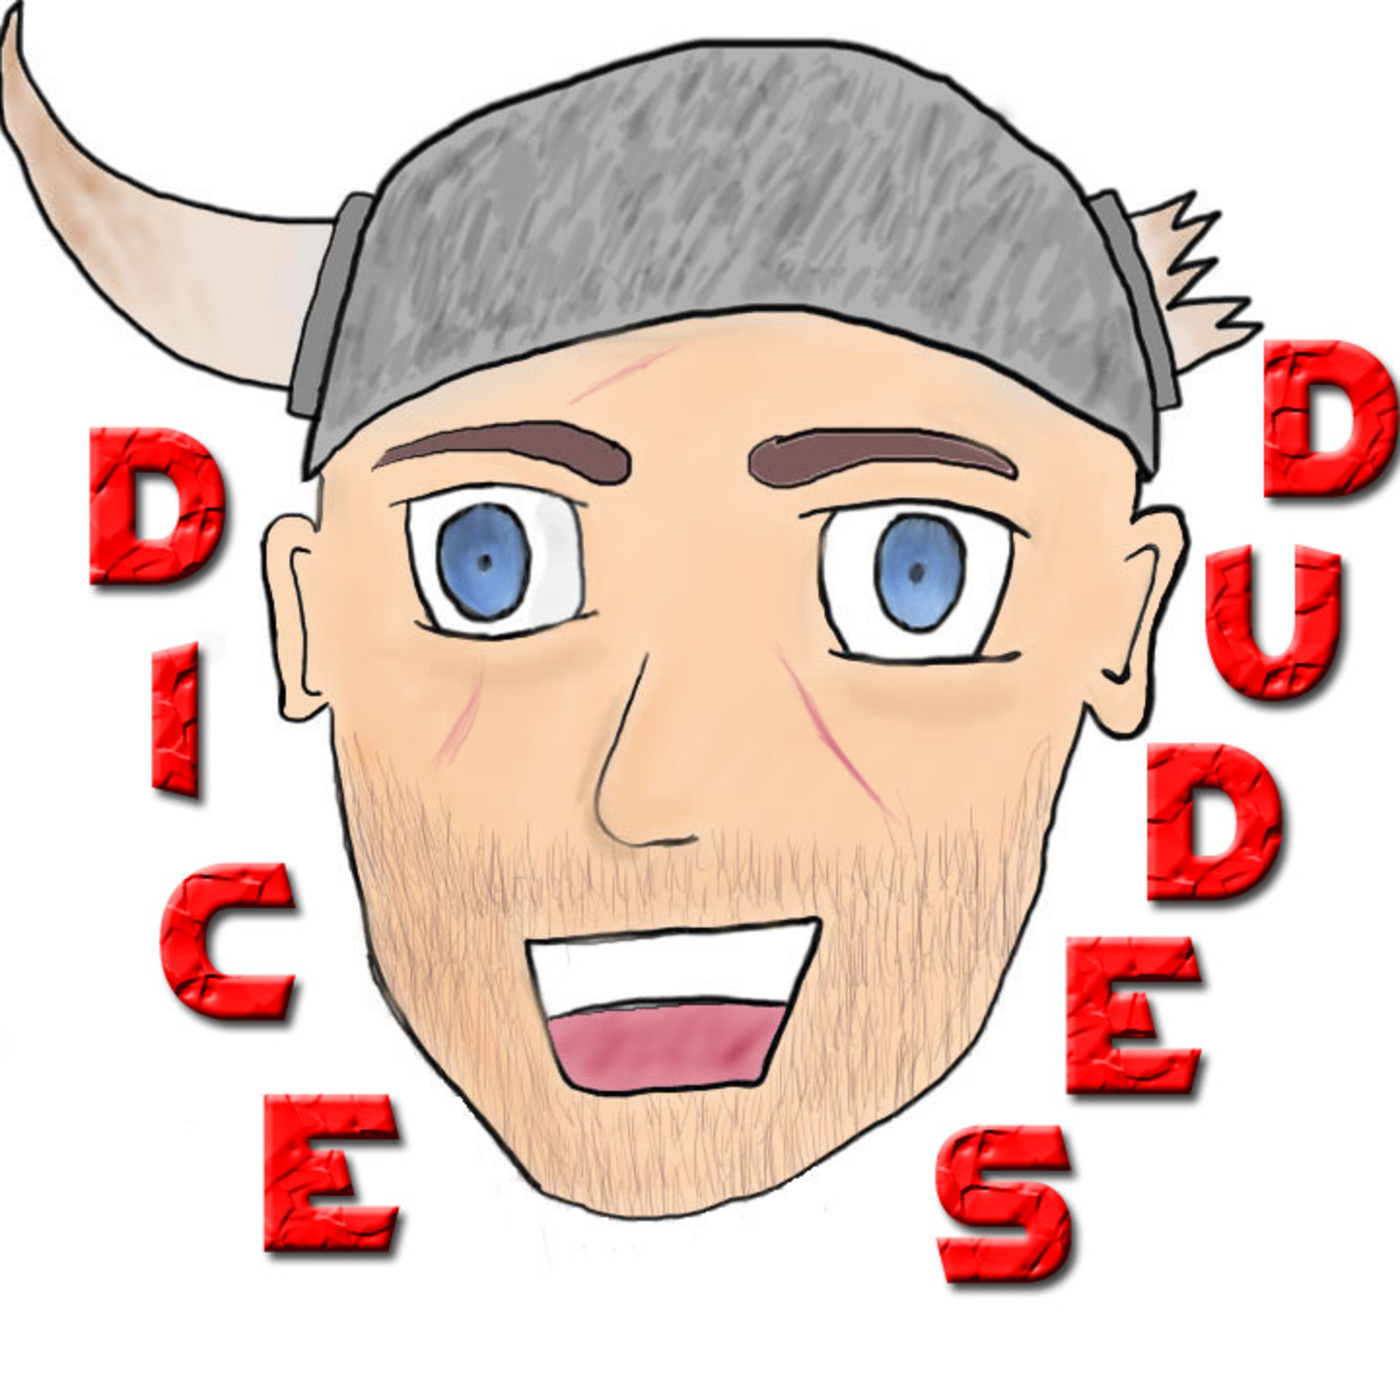 Dice Dudes Podcast